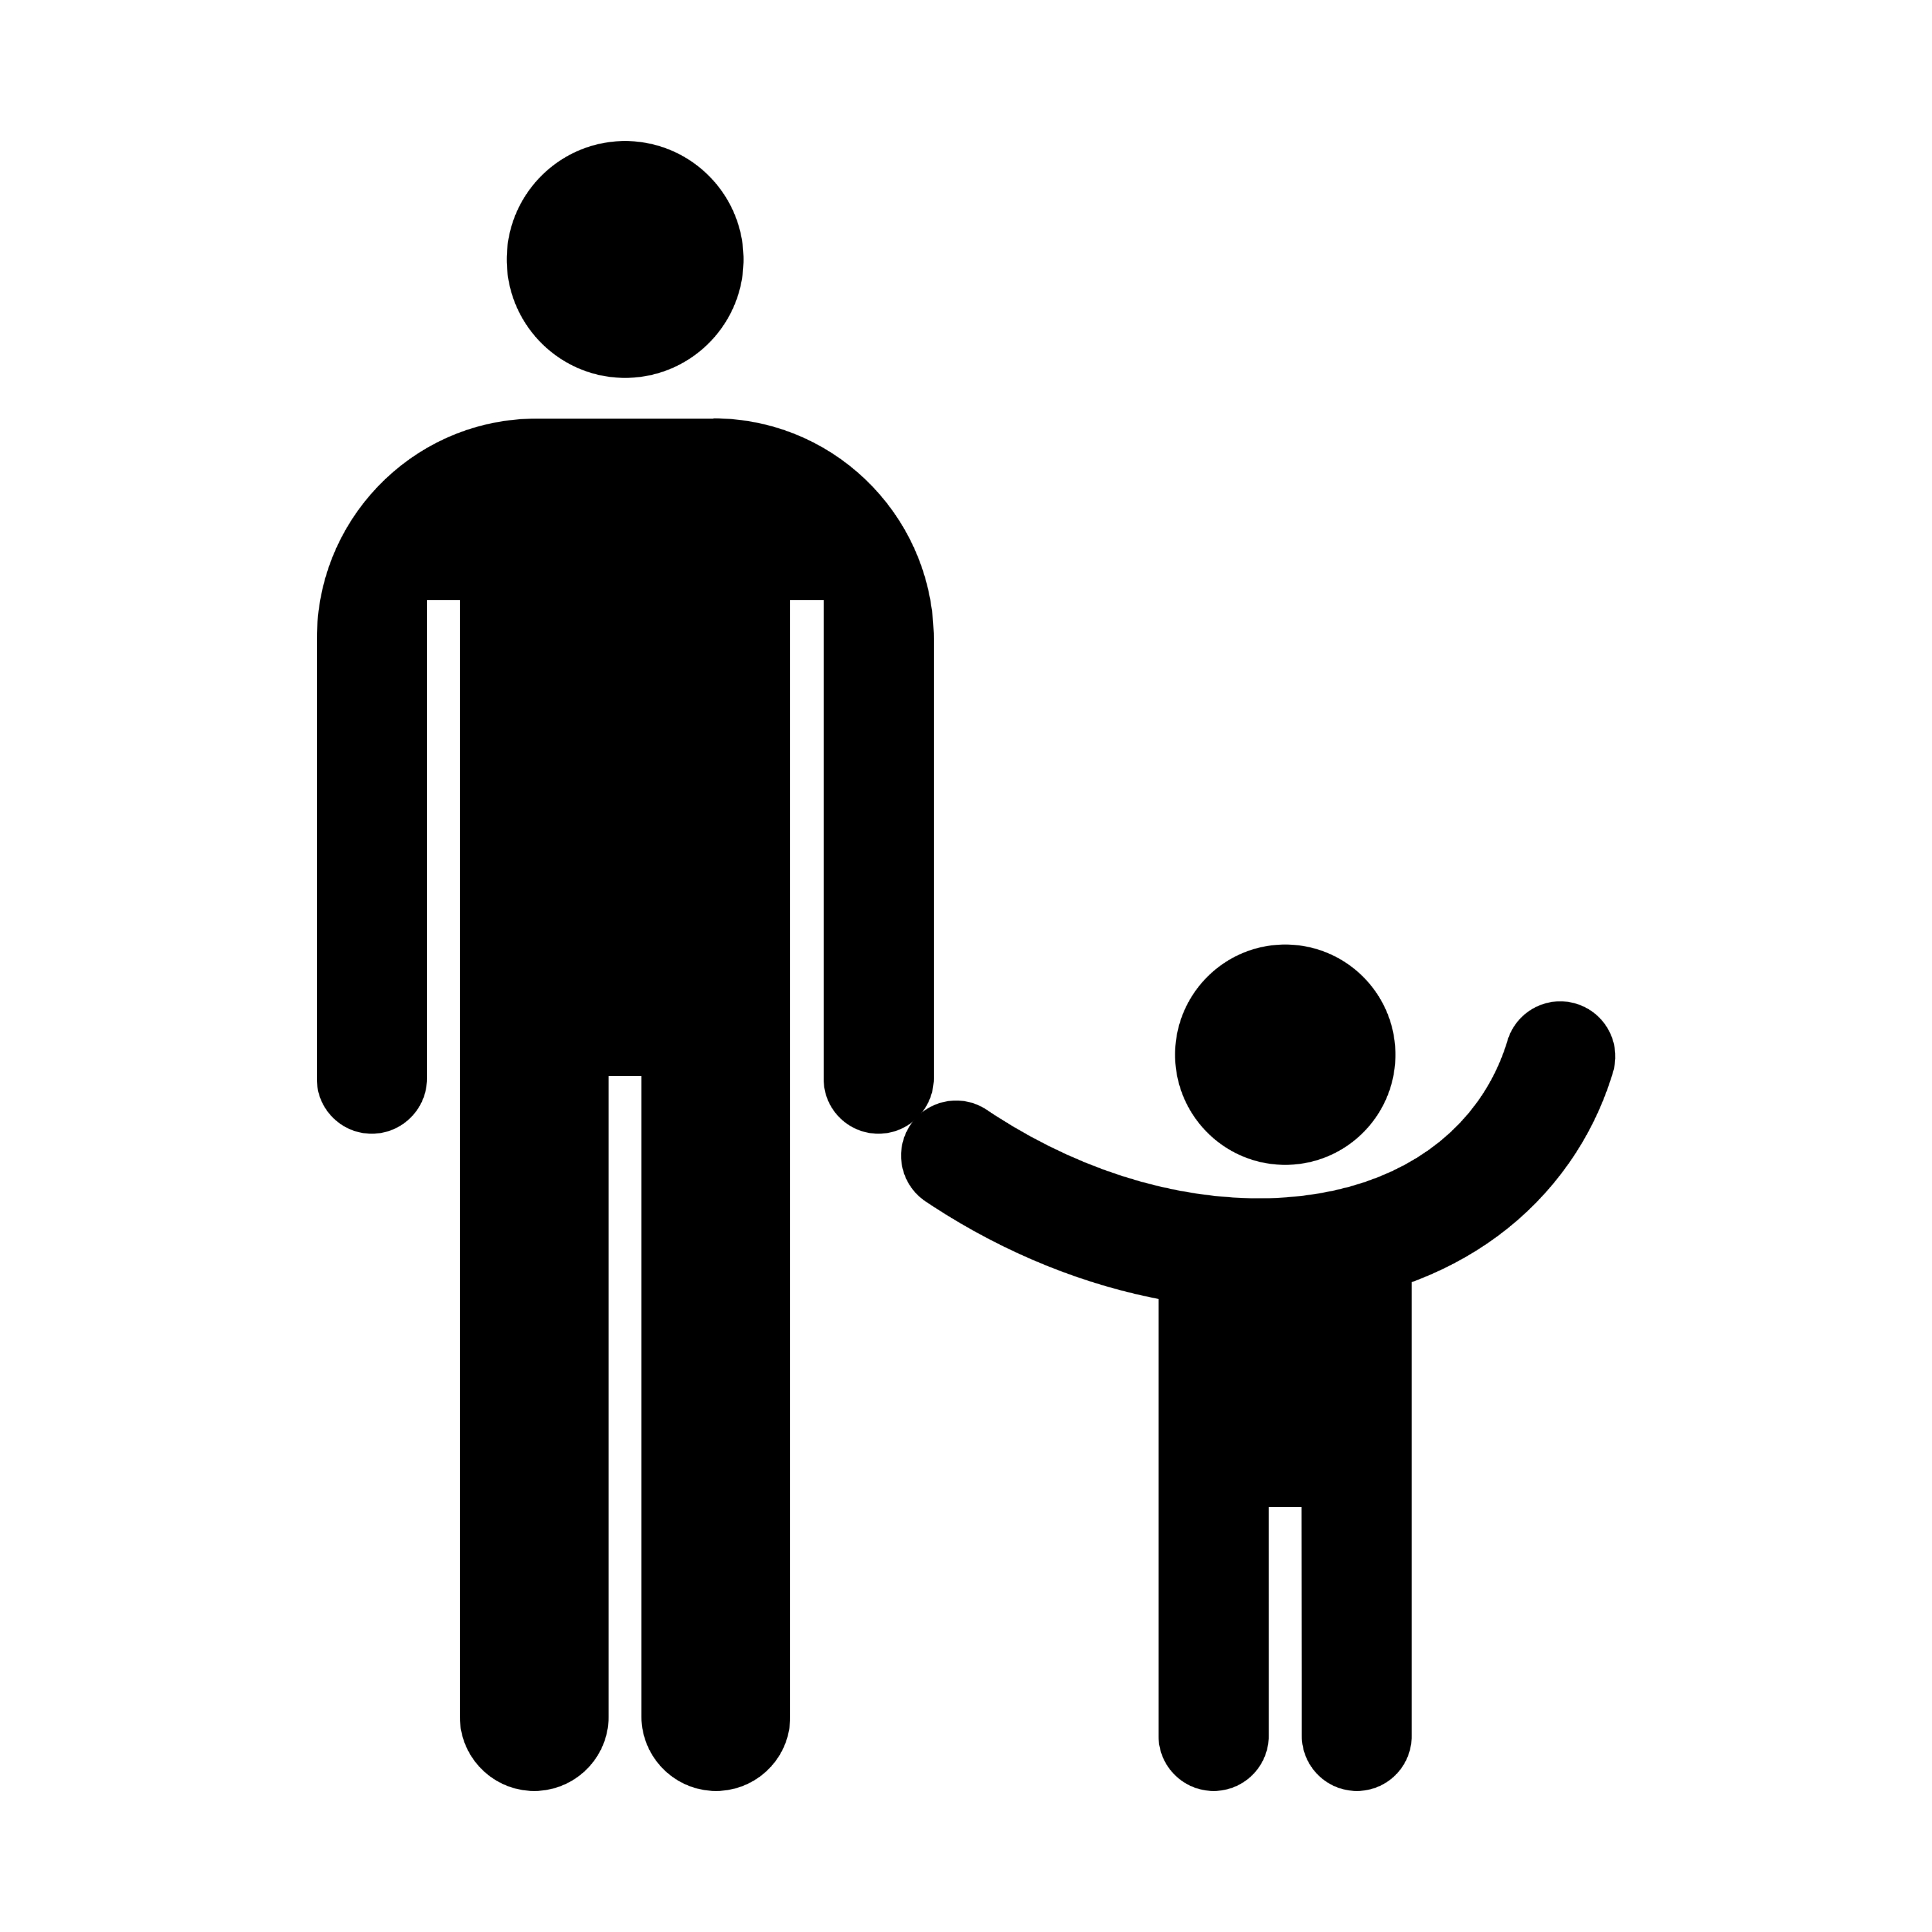 piney point single parent personals Hello,the aim of this group is to host child-friendly events where single parents can socialise with other single parent familiesthis group is not for picking people up and any harassment.